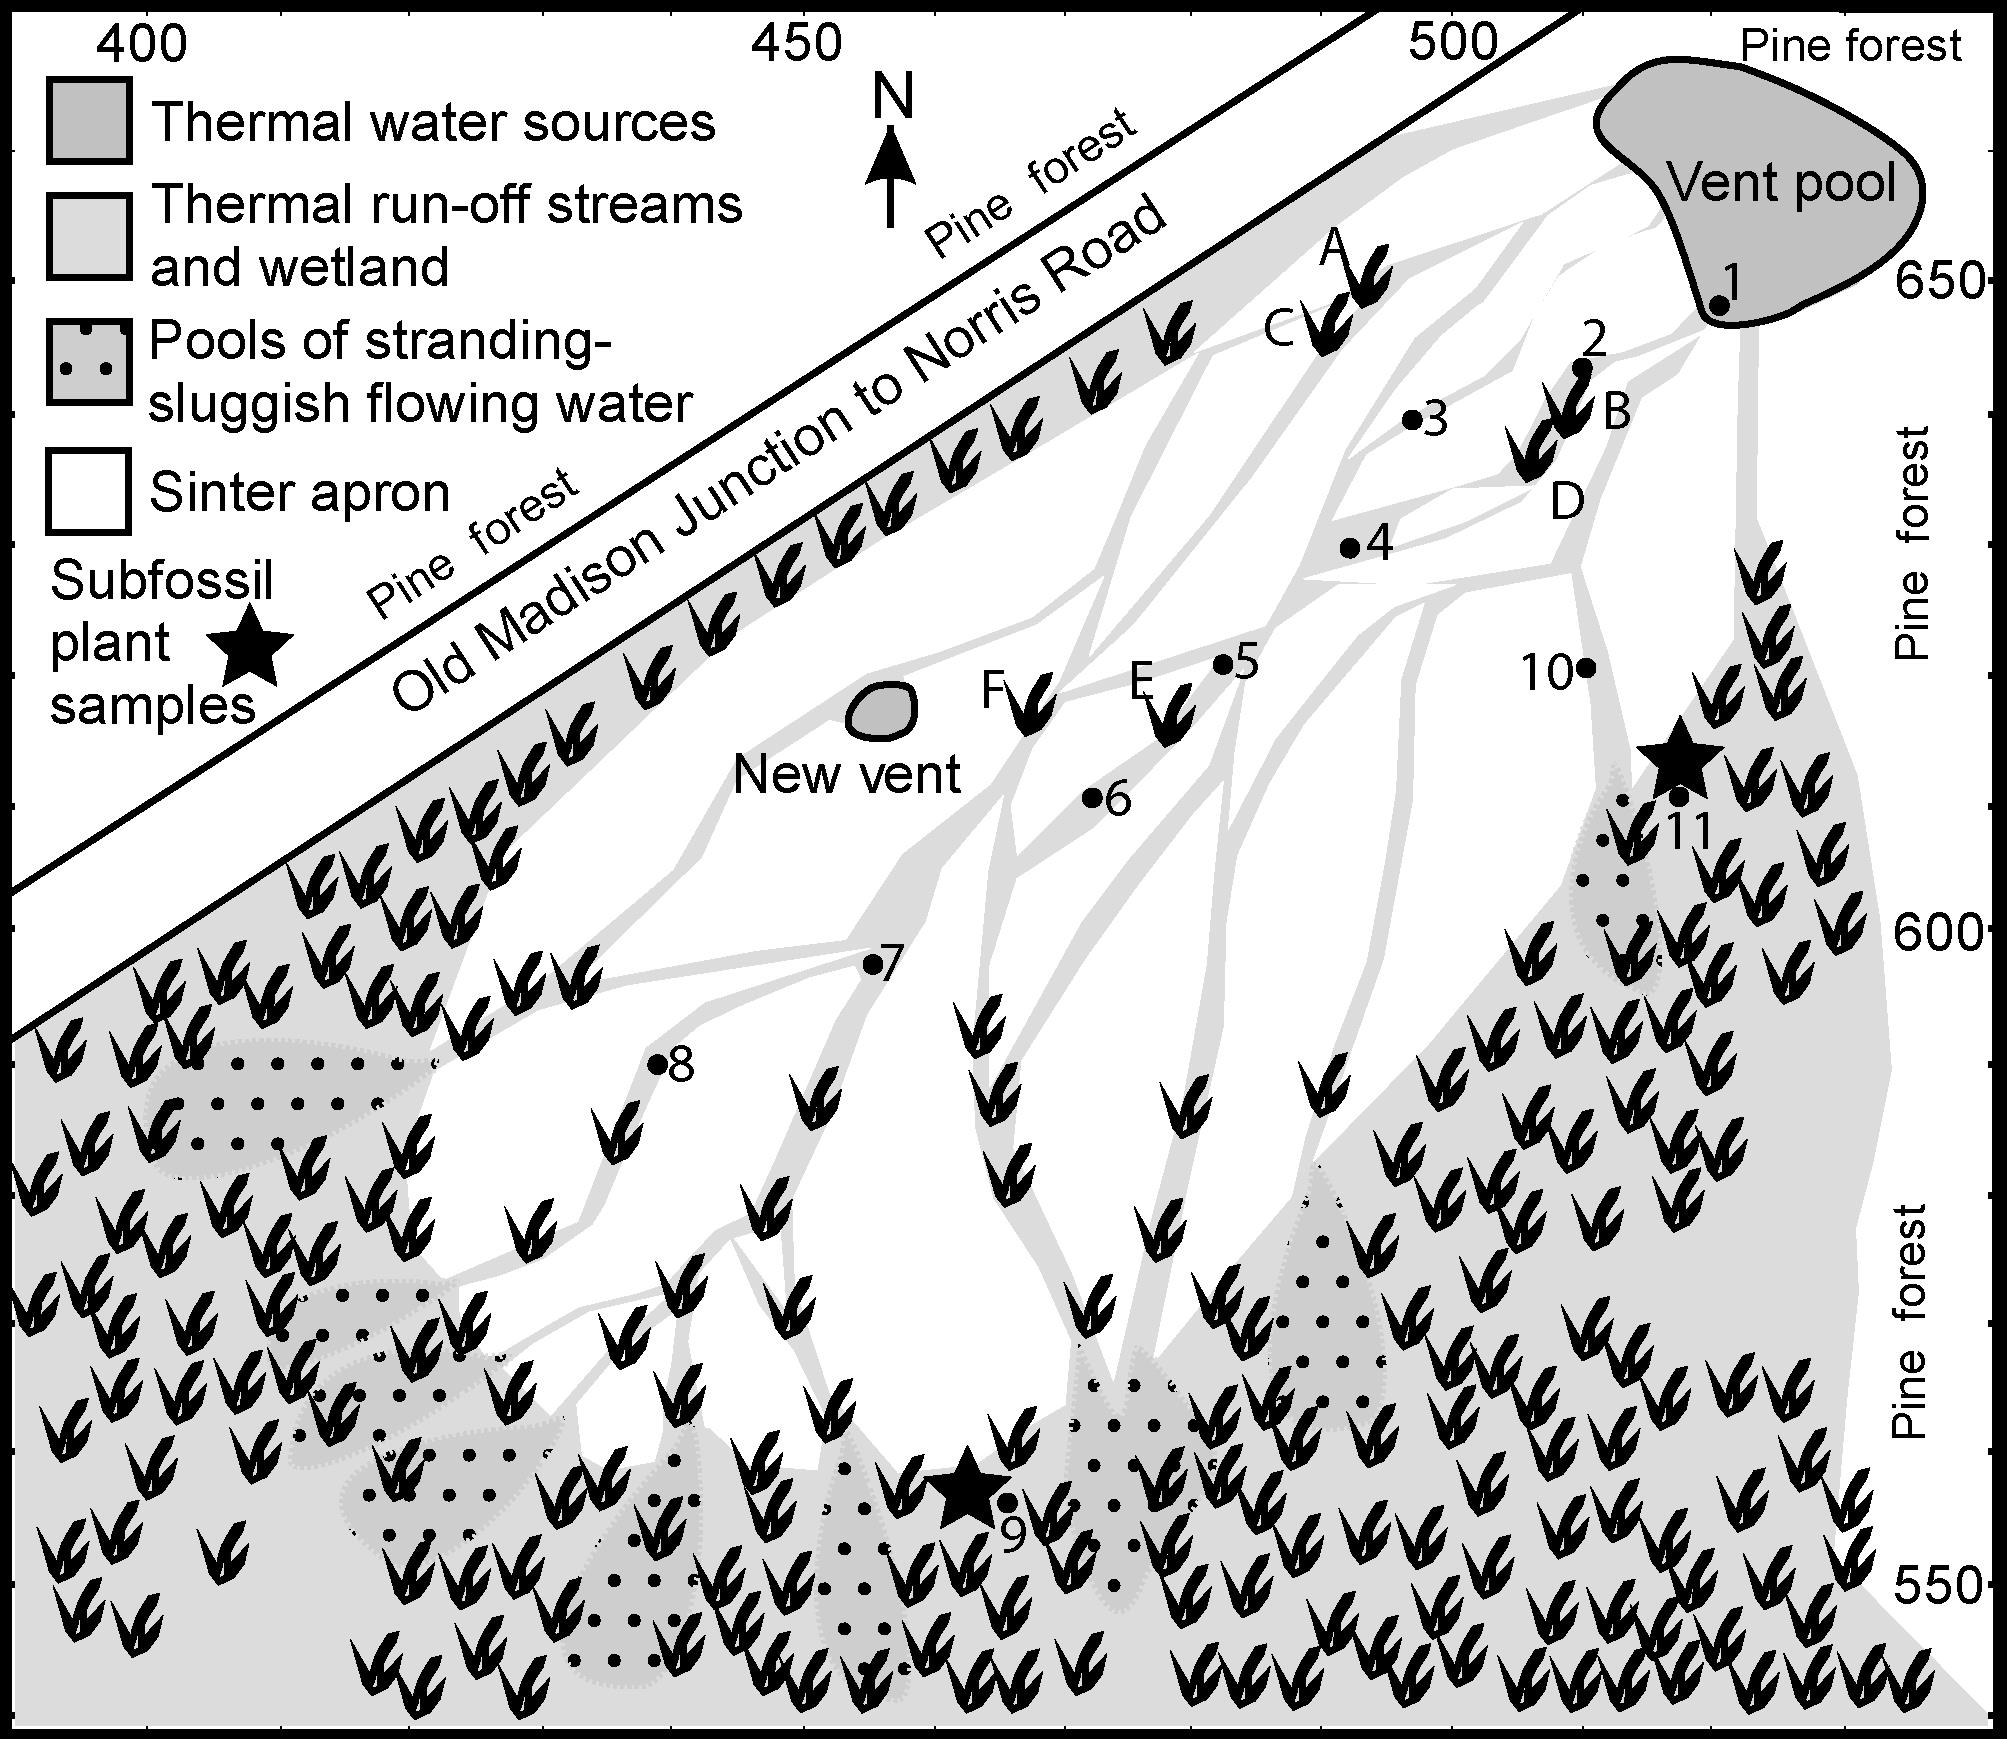 Silicification of higher plants in geothermally influenced